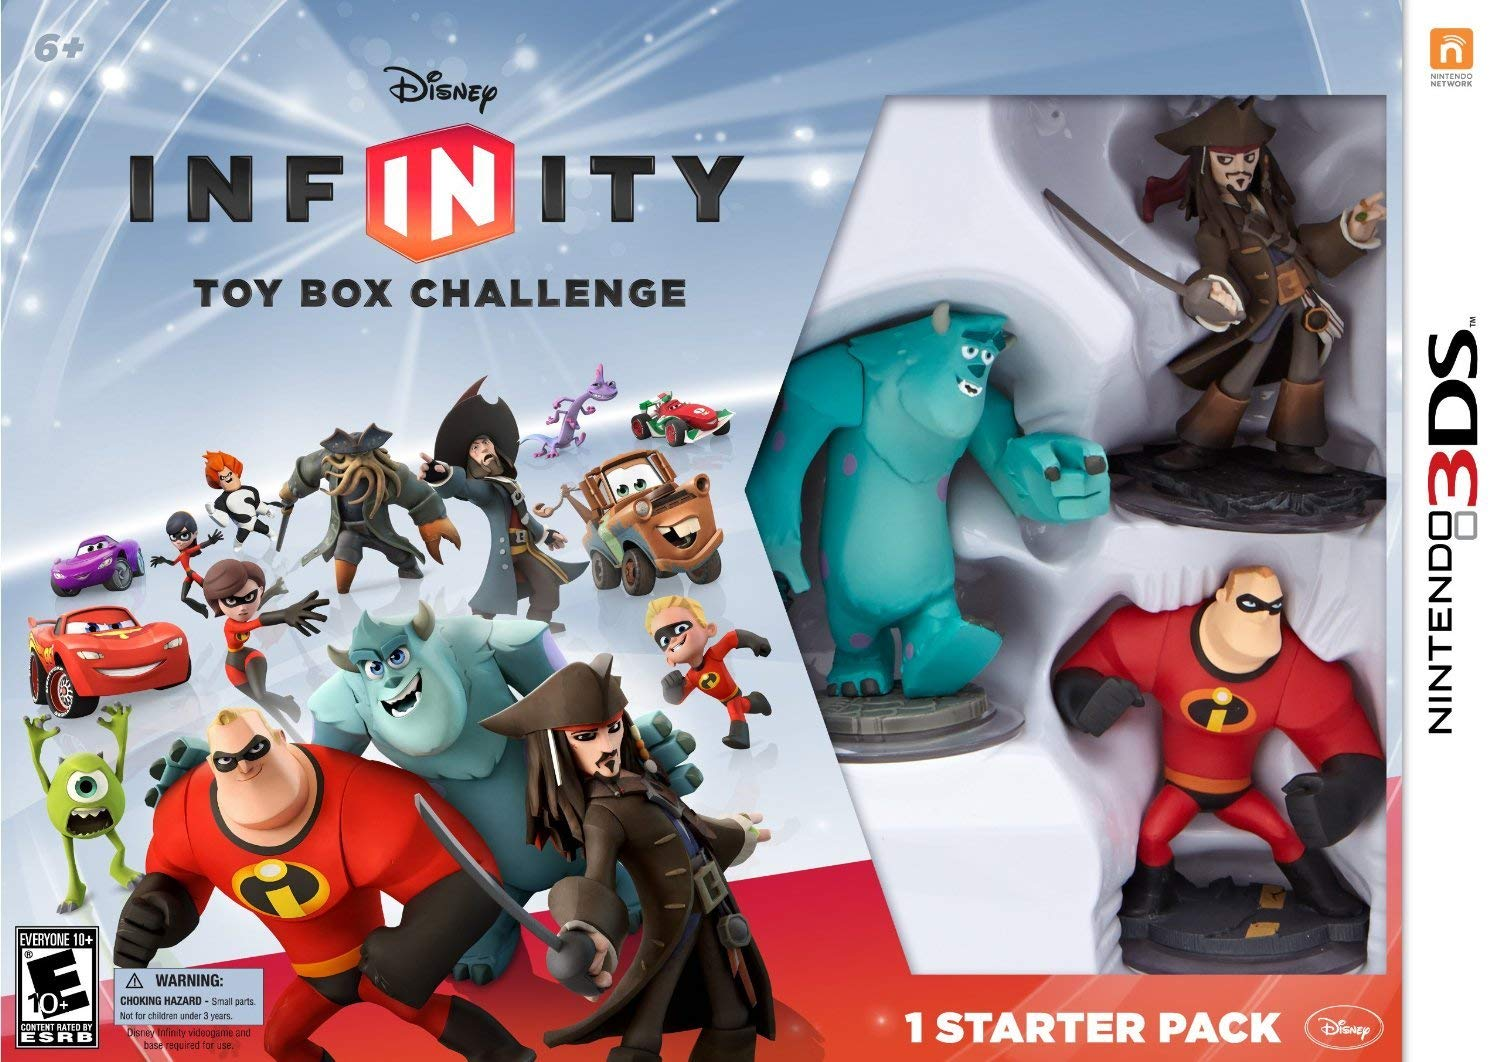 Disney Infinity Toy Box Challenge